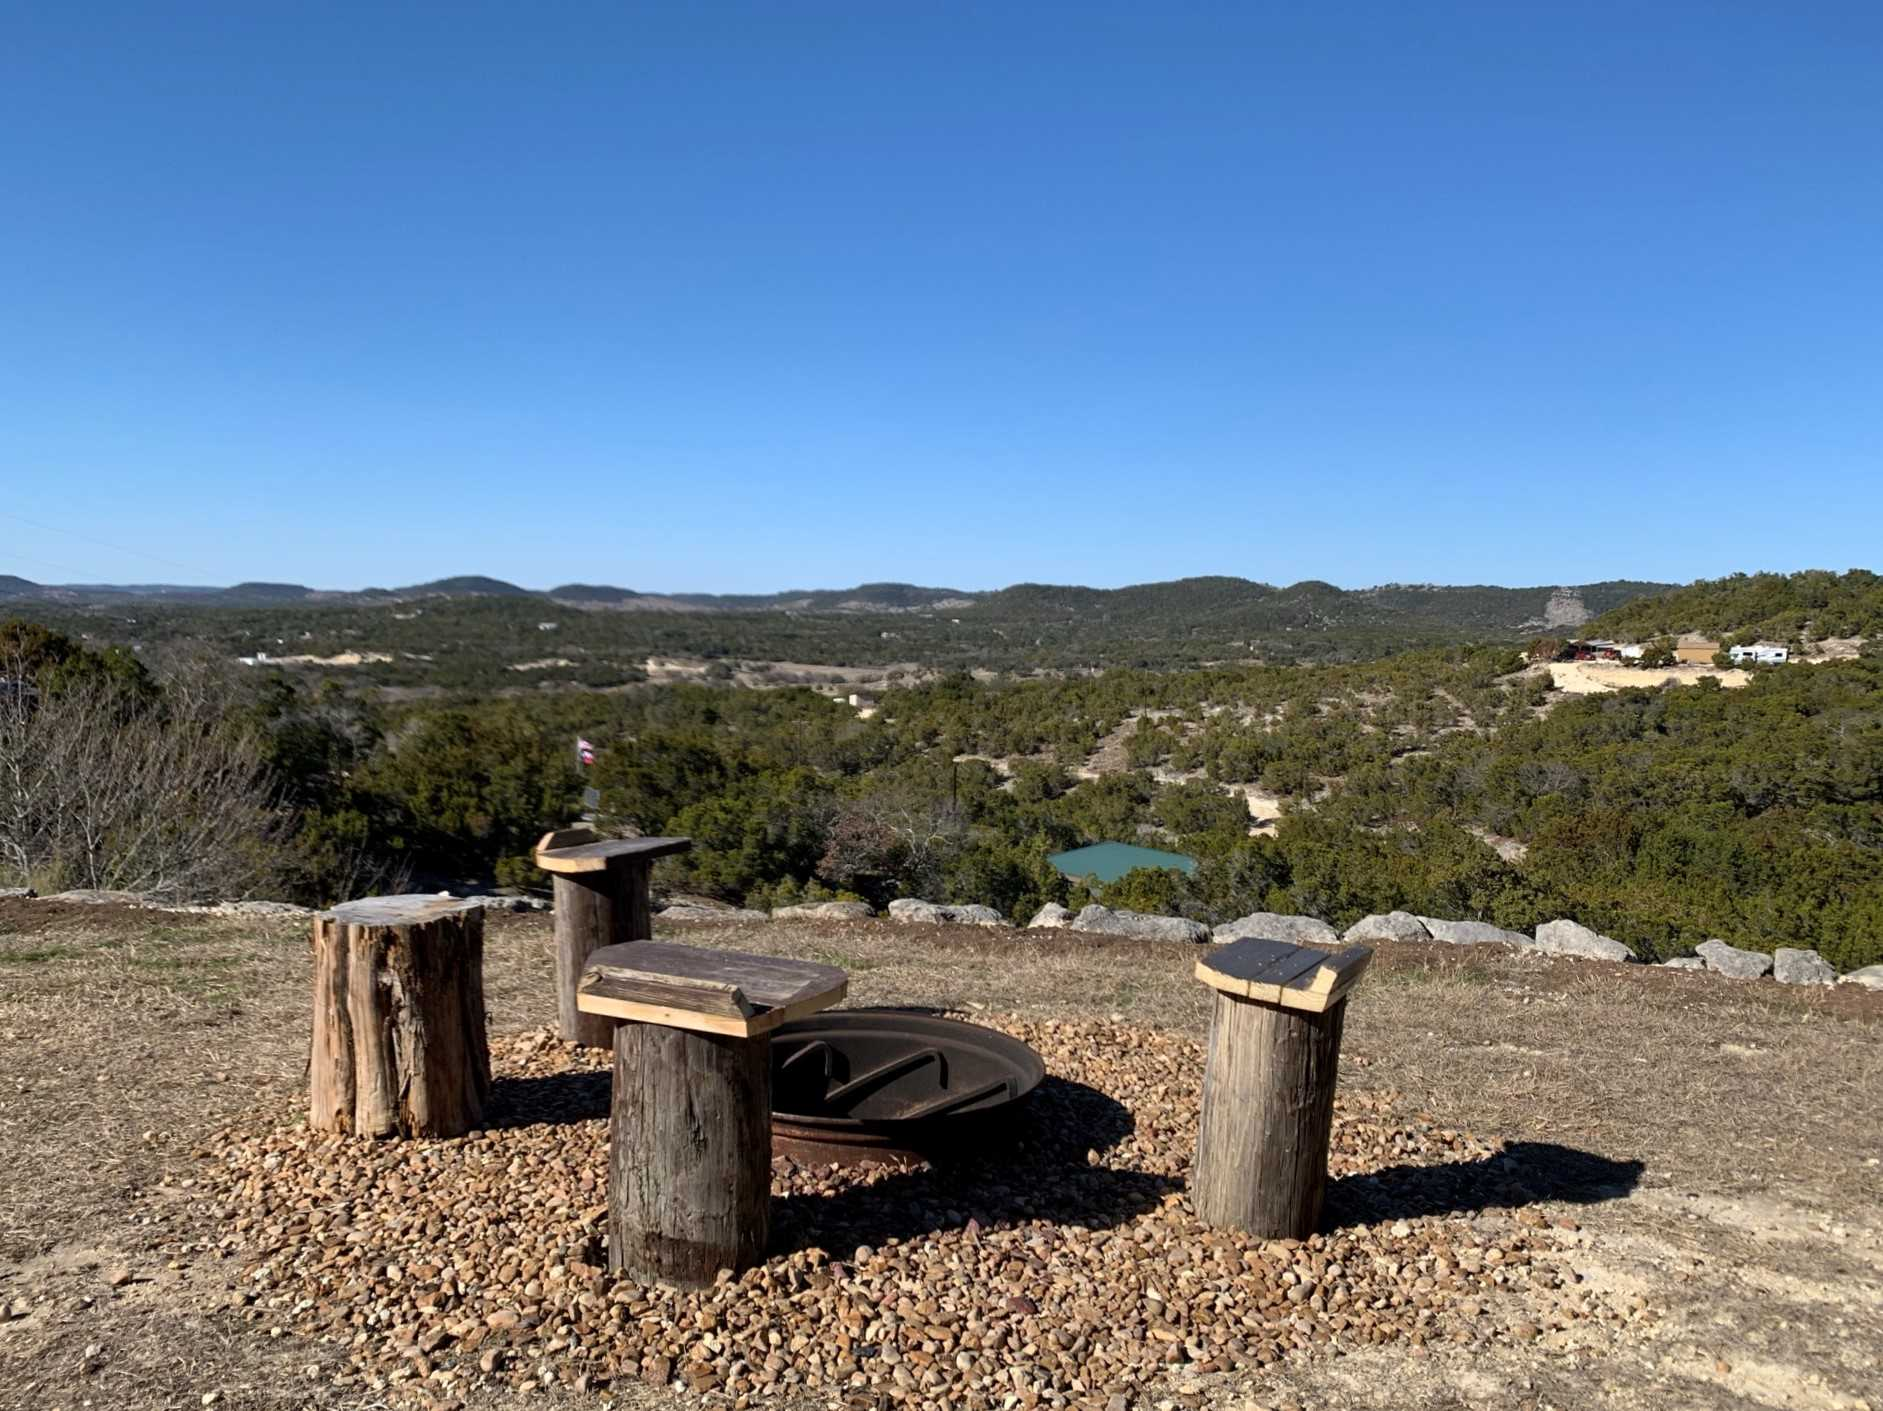 Day or night, the views from the cliffside fire pit are a hit with our guests!